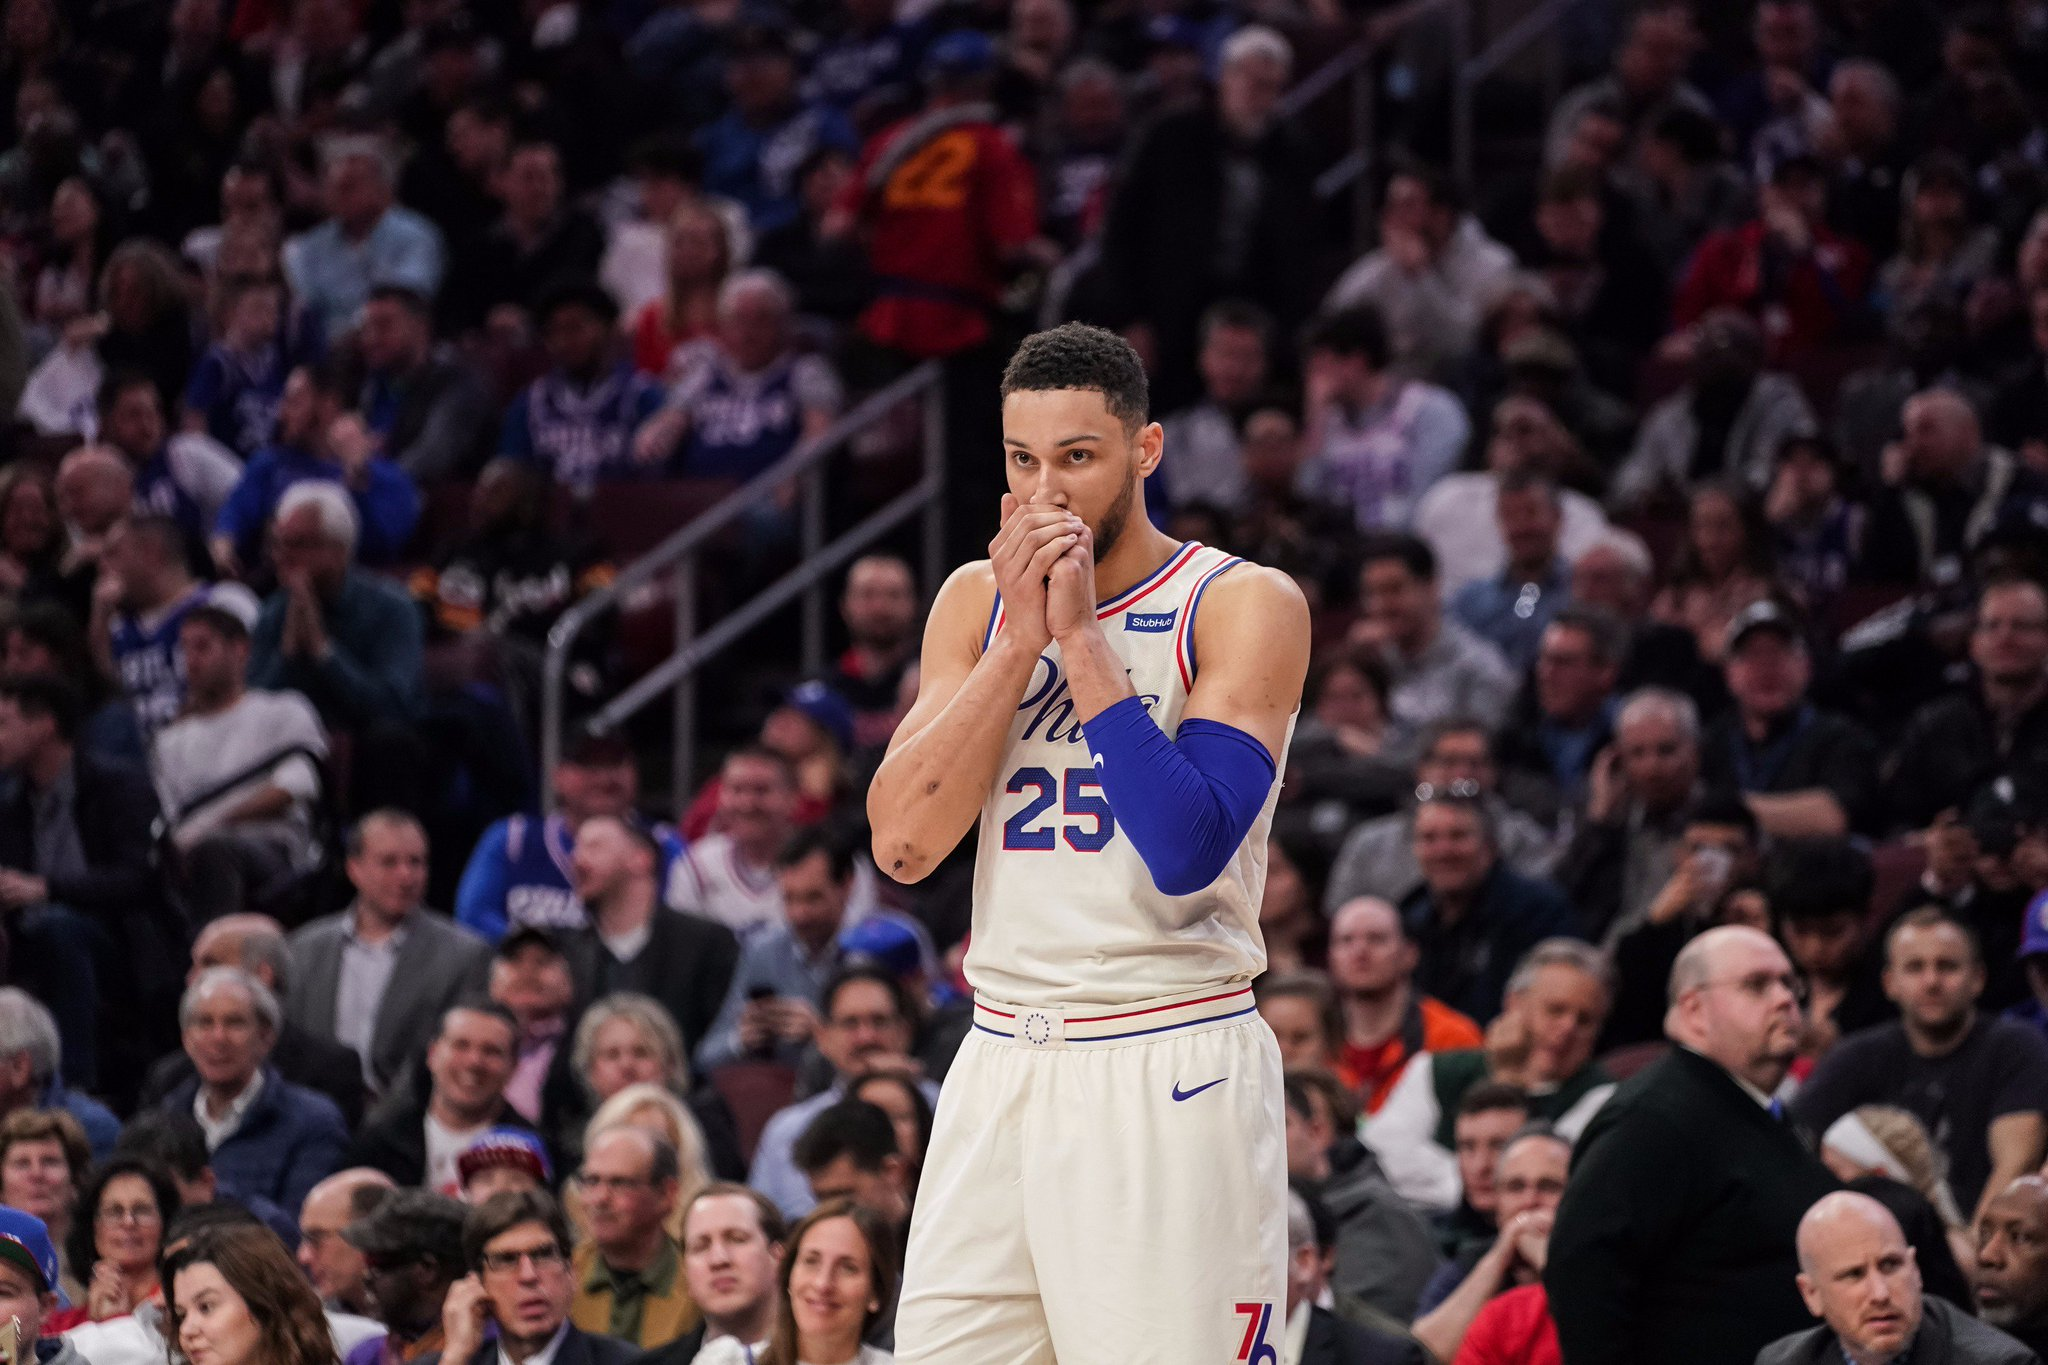 Stats from the regular season before the post-season » https://t.co/wcGsjtkrVW  #PhilaUnite x #HereTheyCome https://t.co/vQsc7q2sB2